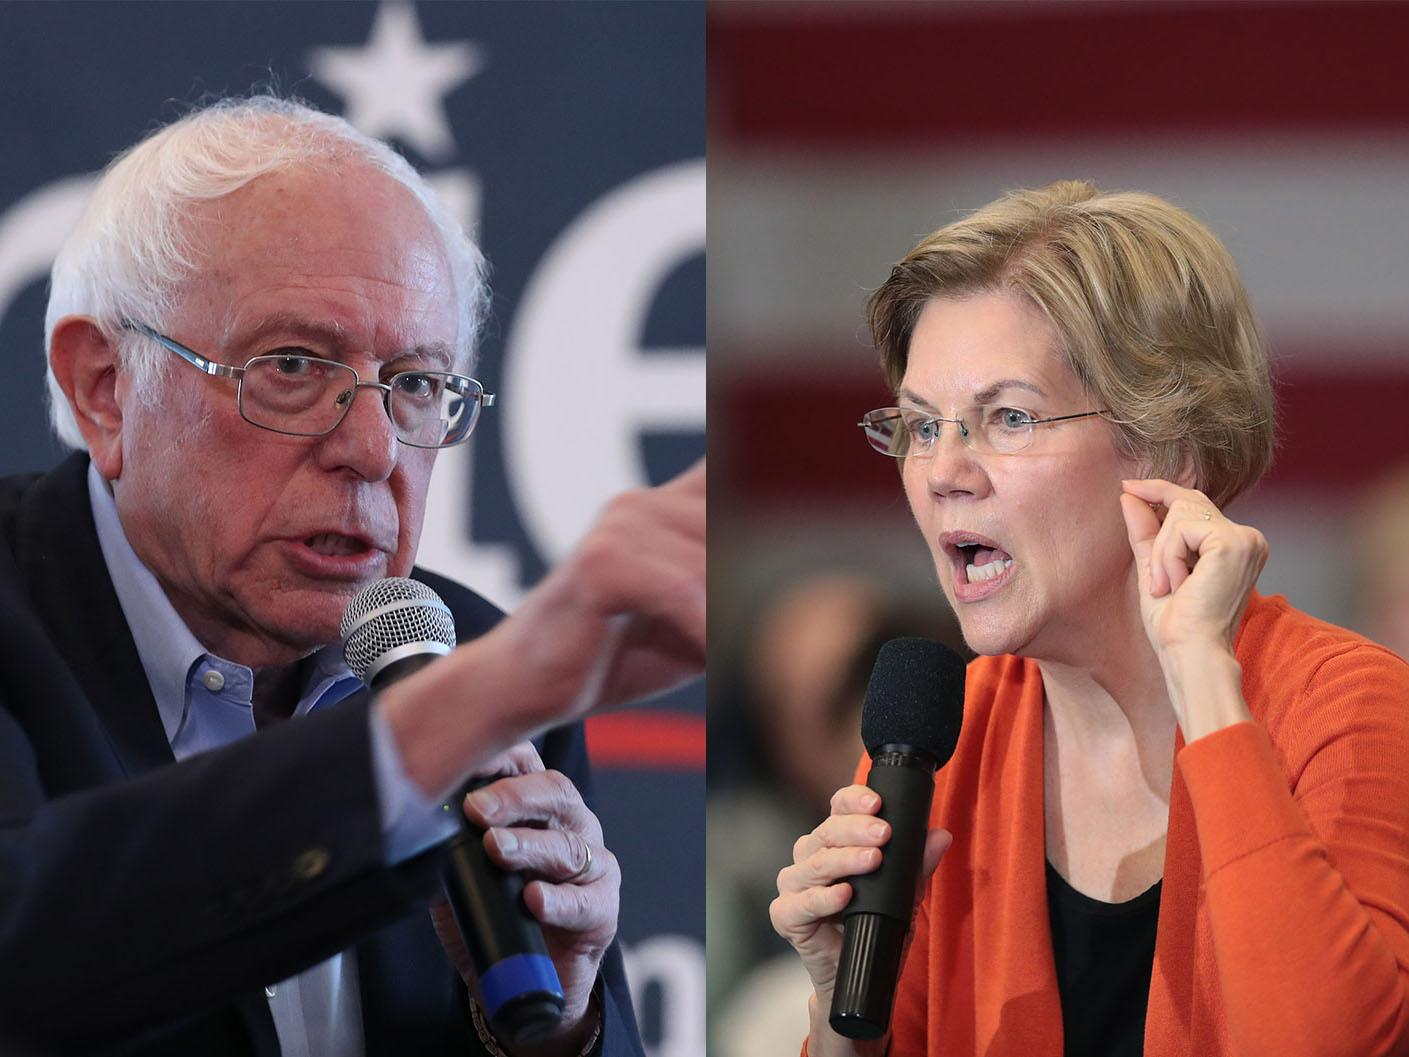 Elizabeth Warren claims Bernie Sanders told her female candidate could not beat Trump in 2020 election